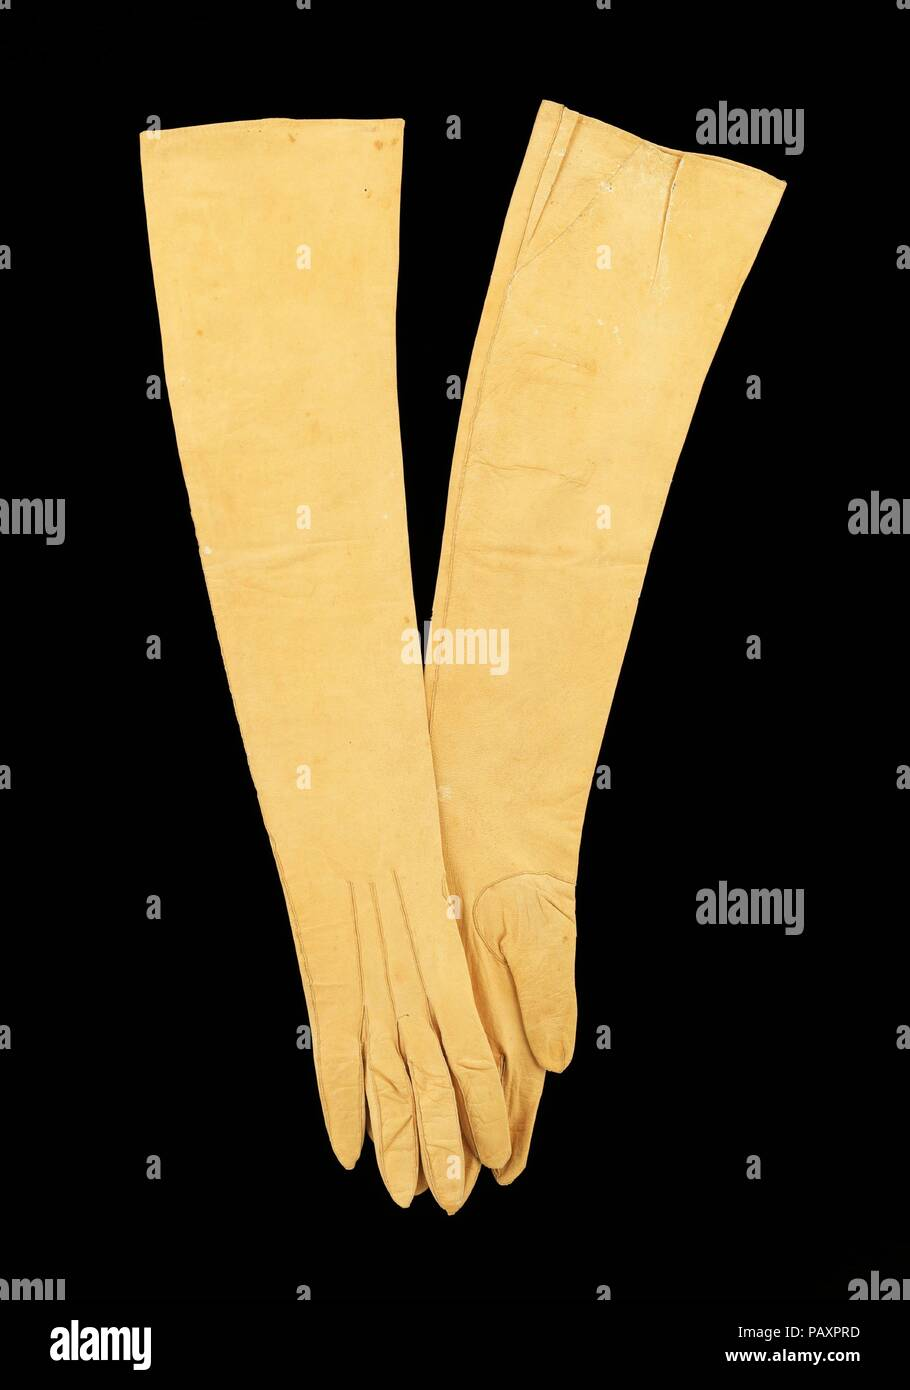 Evening gloves. Culture: American. Date: 1805.  All hand sewn, the construction of the gloves is particularly detailed for the period.  Between each finger are small diamond-shaped  gussets (quirks) which would have required considerable skill to fashion in leather. Museum: Metropolitan Museum of Art, New York, USA. - Stock Image